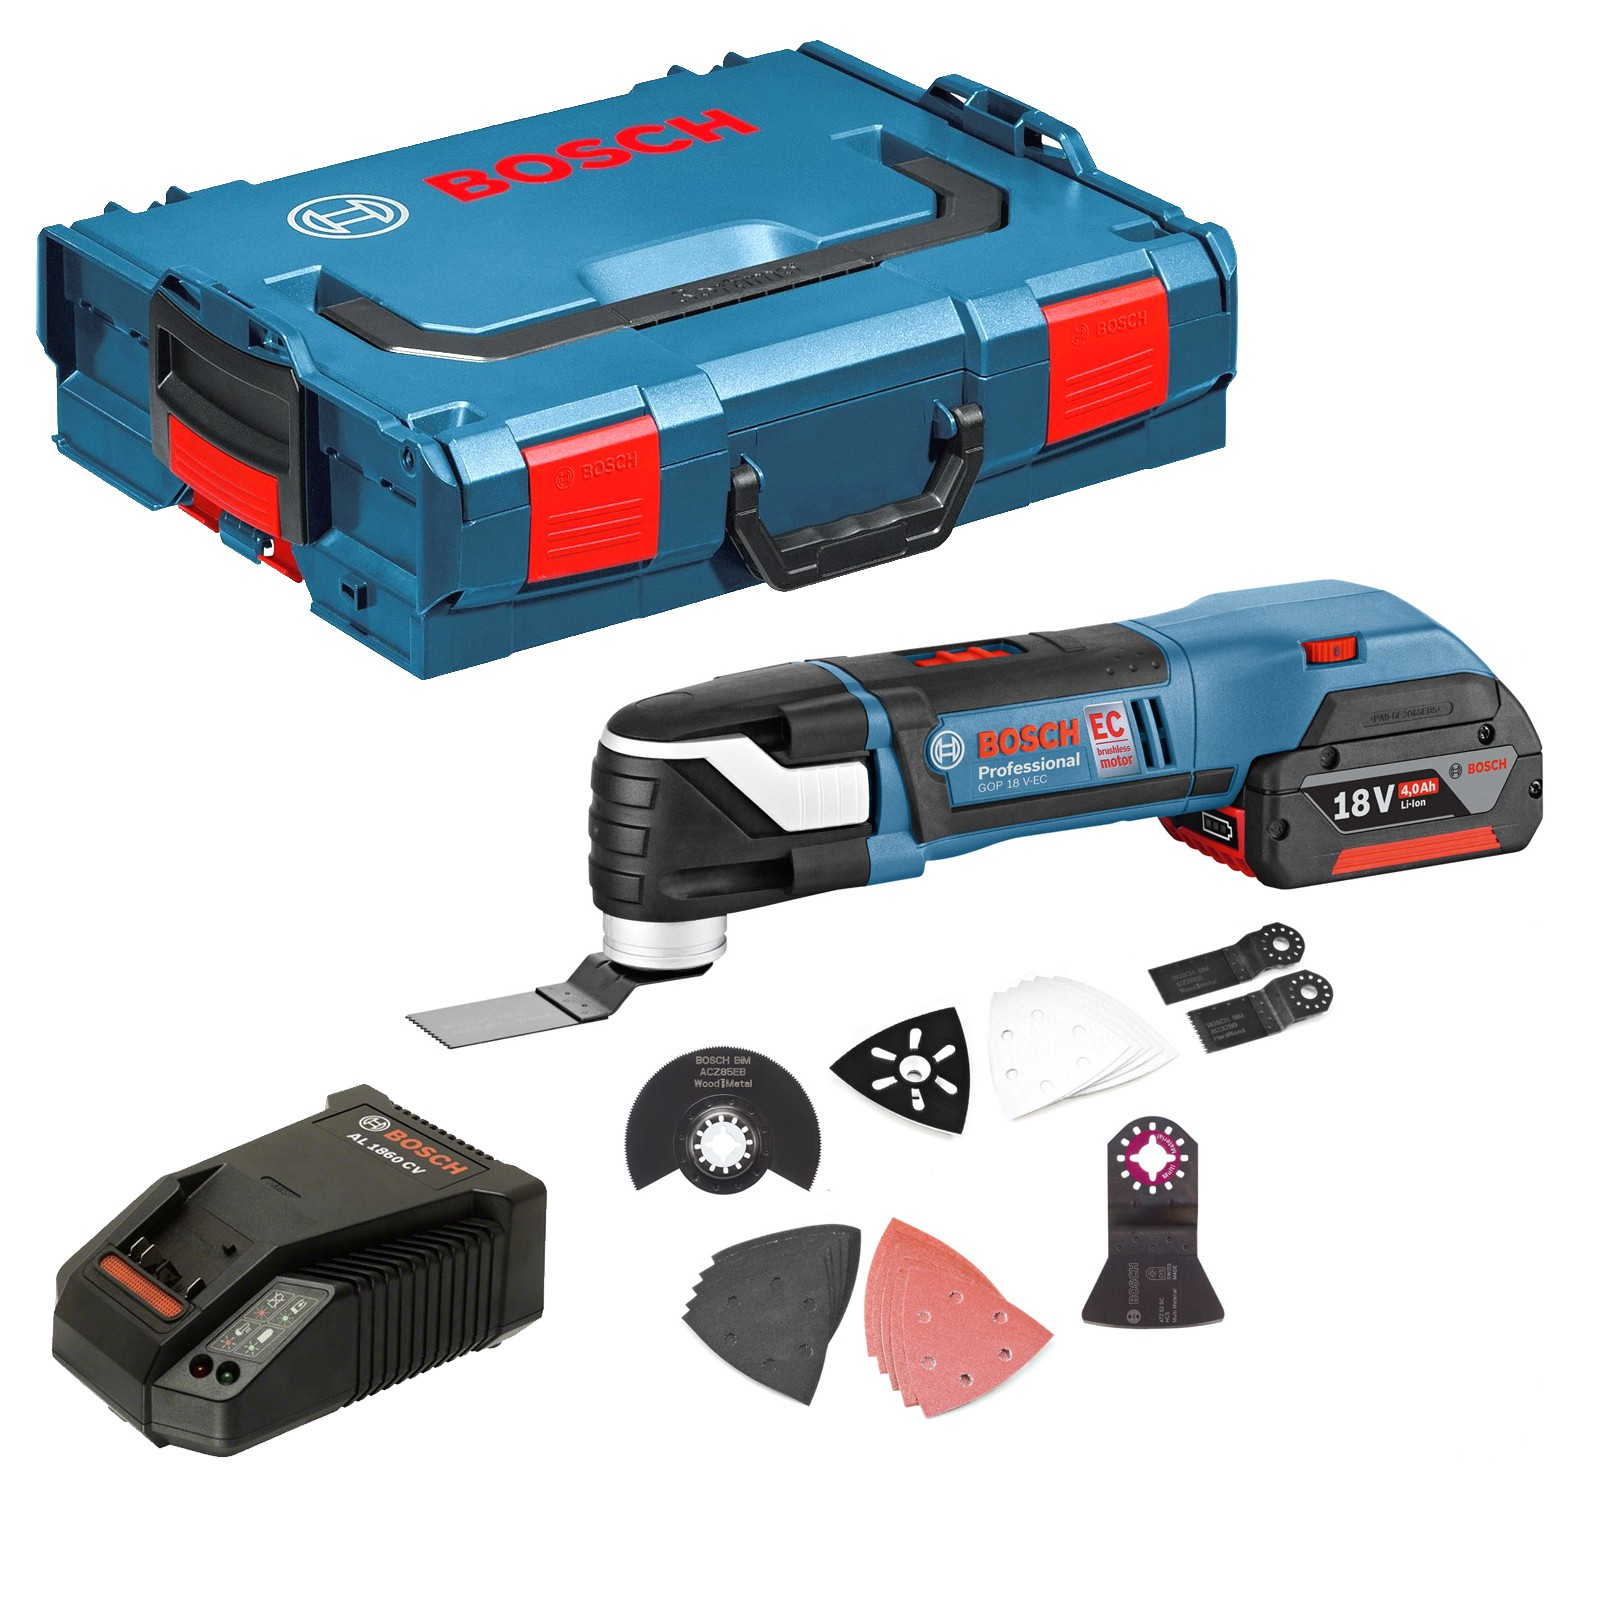 Bosch GOP 18 V-EC Brushless Multi-Cutter with 20 Accessories inc 1x 4Ah Batt 0615990FW1